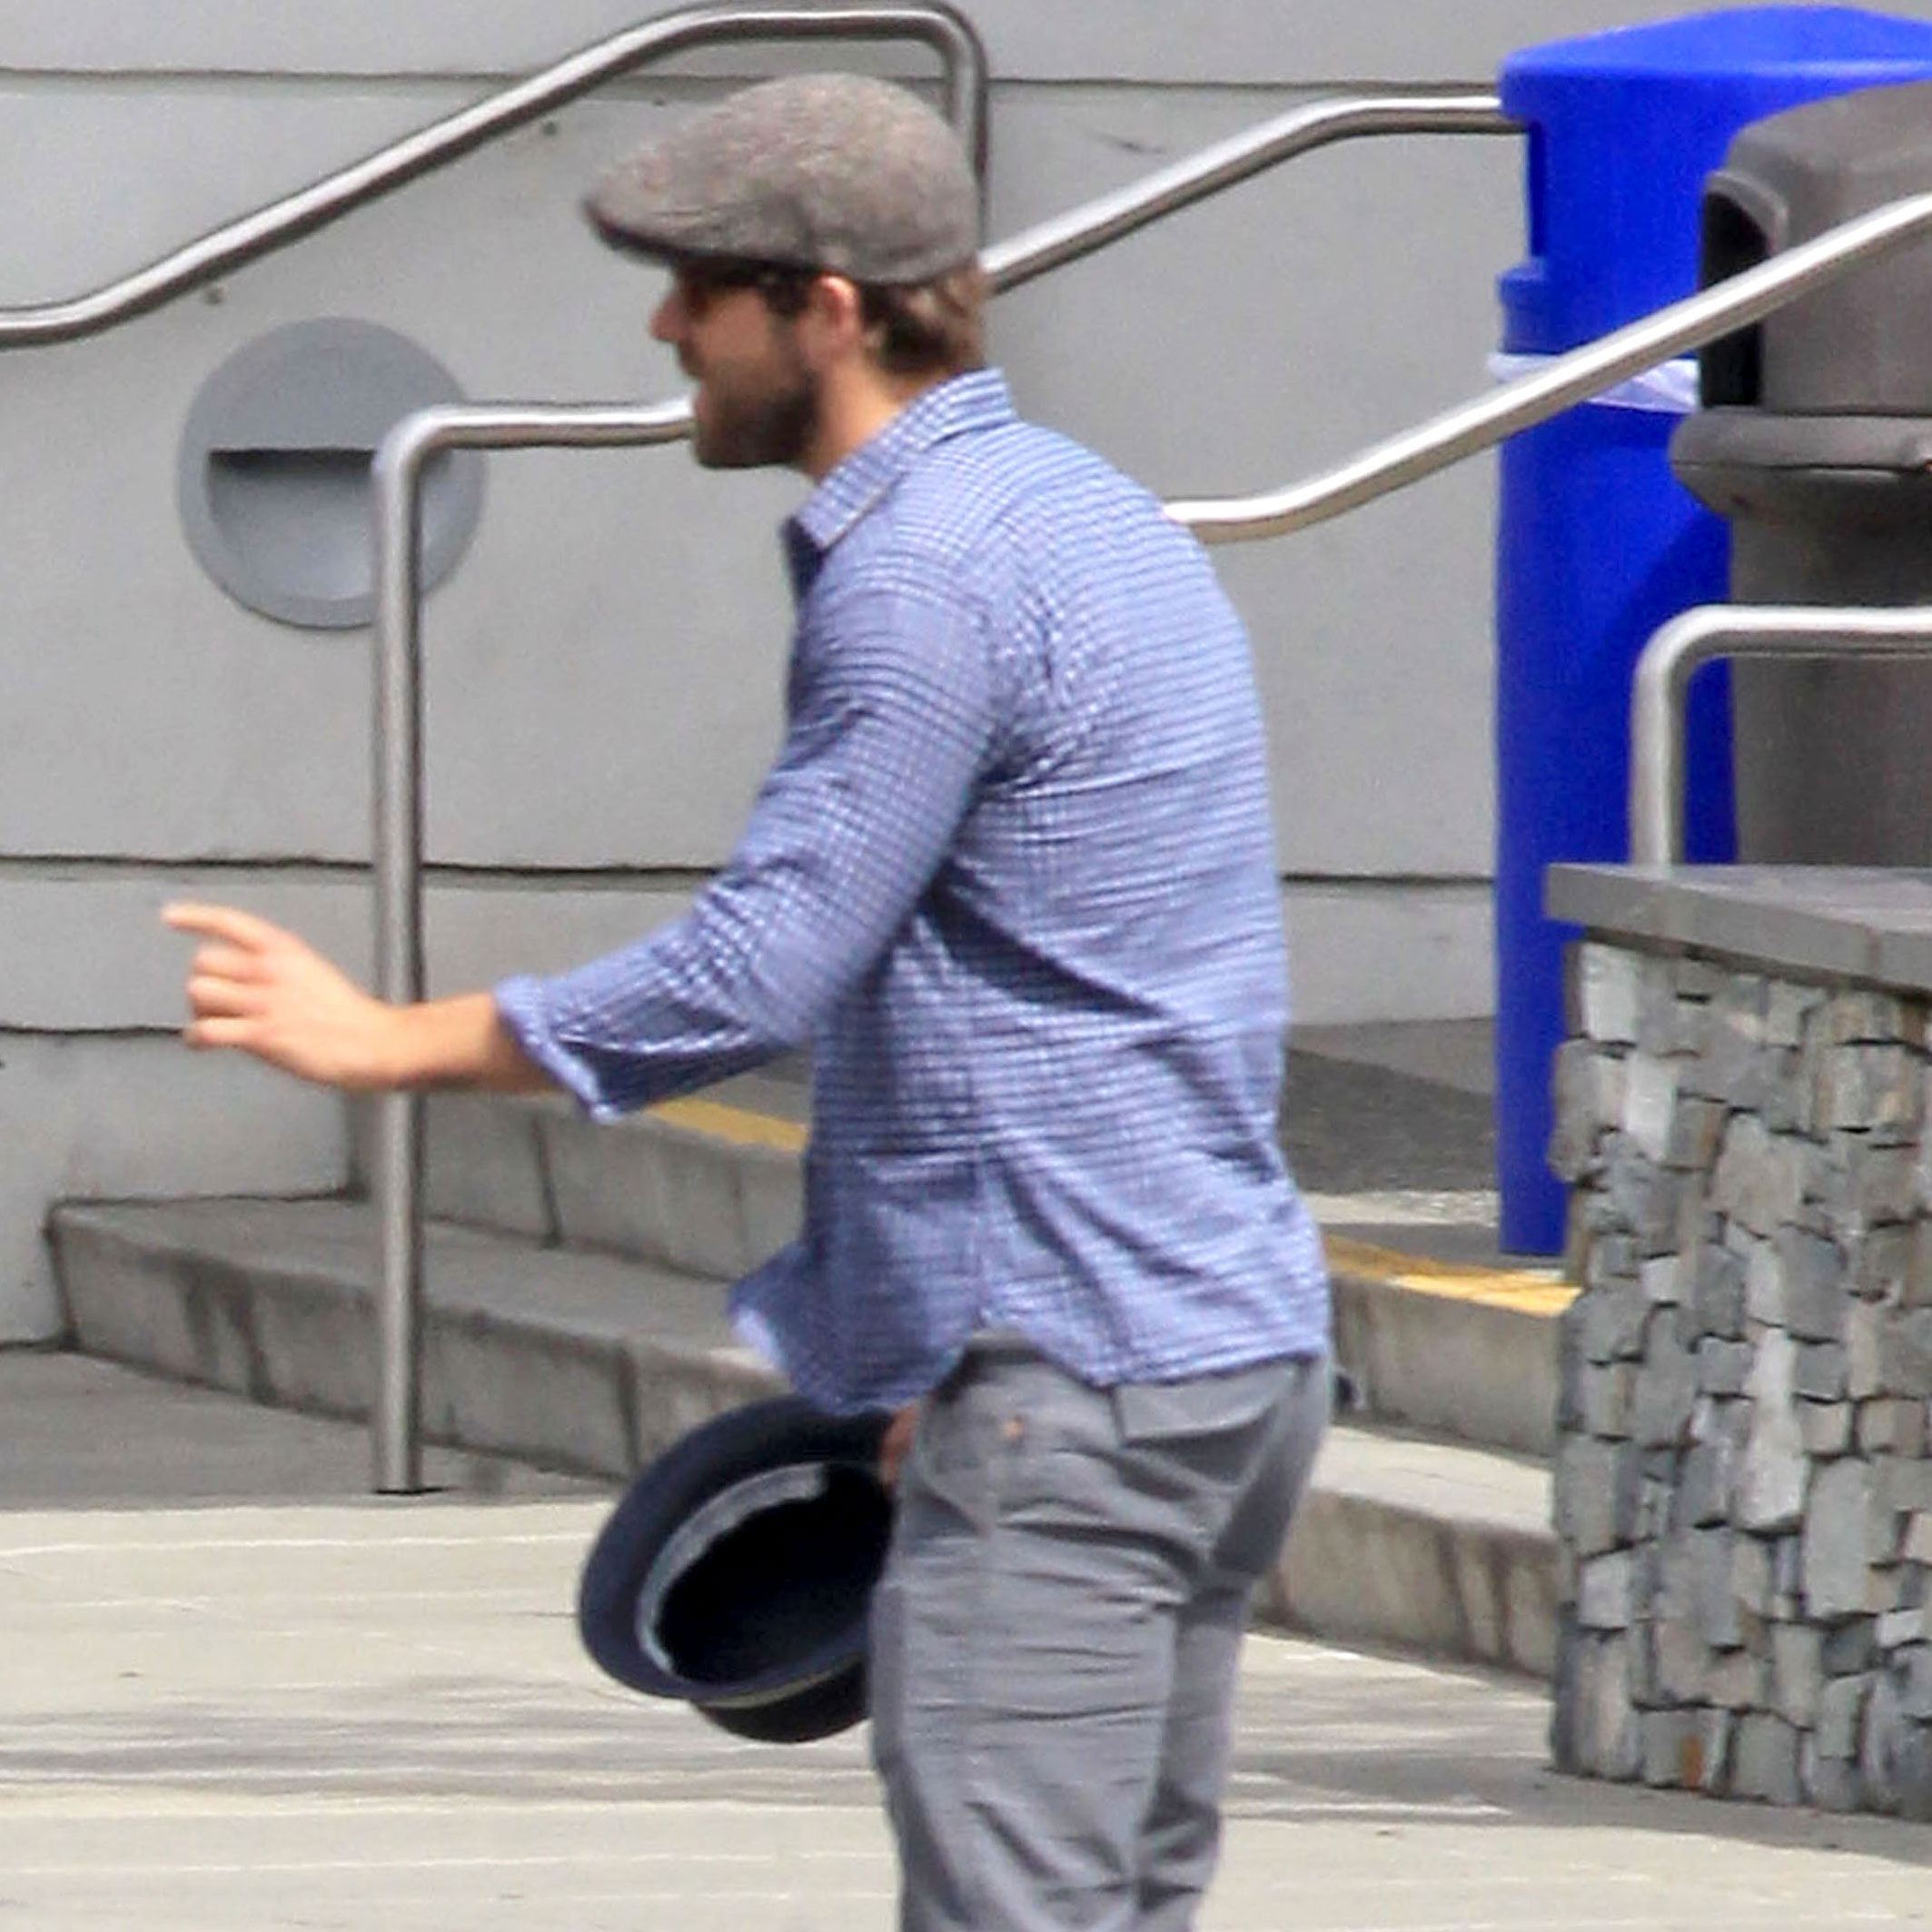 Blake Lively and Ryan Reynolds Get Cute in Canada During a Visit With His Family